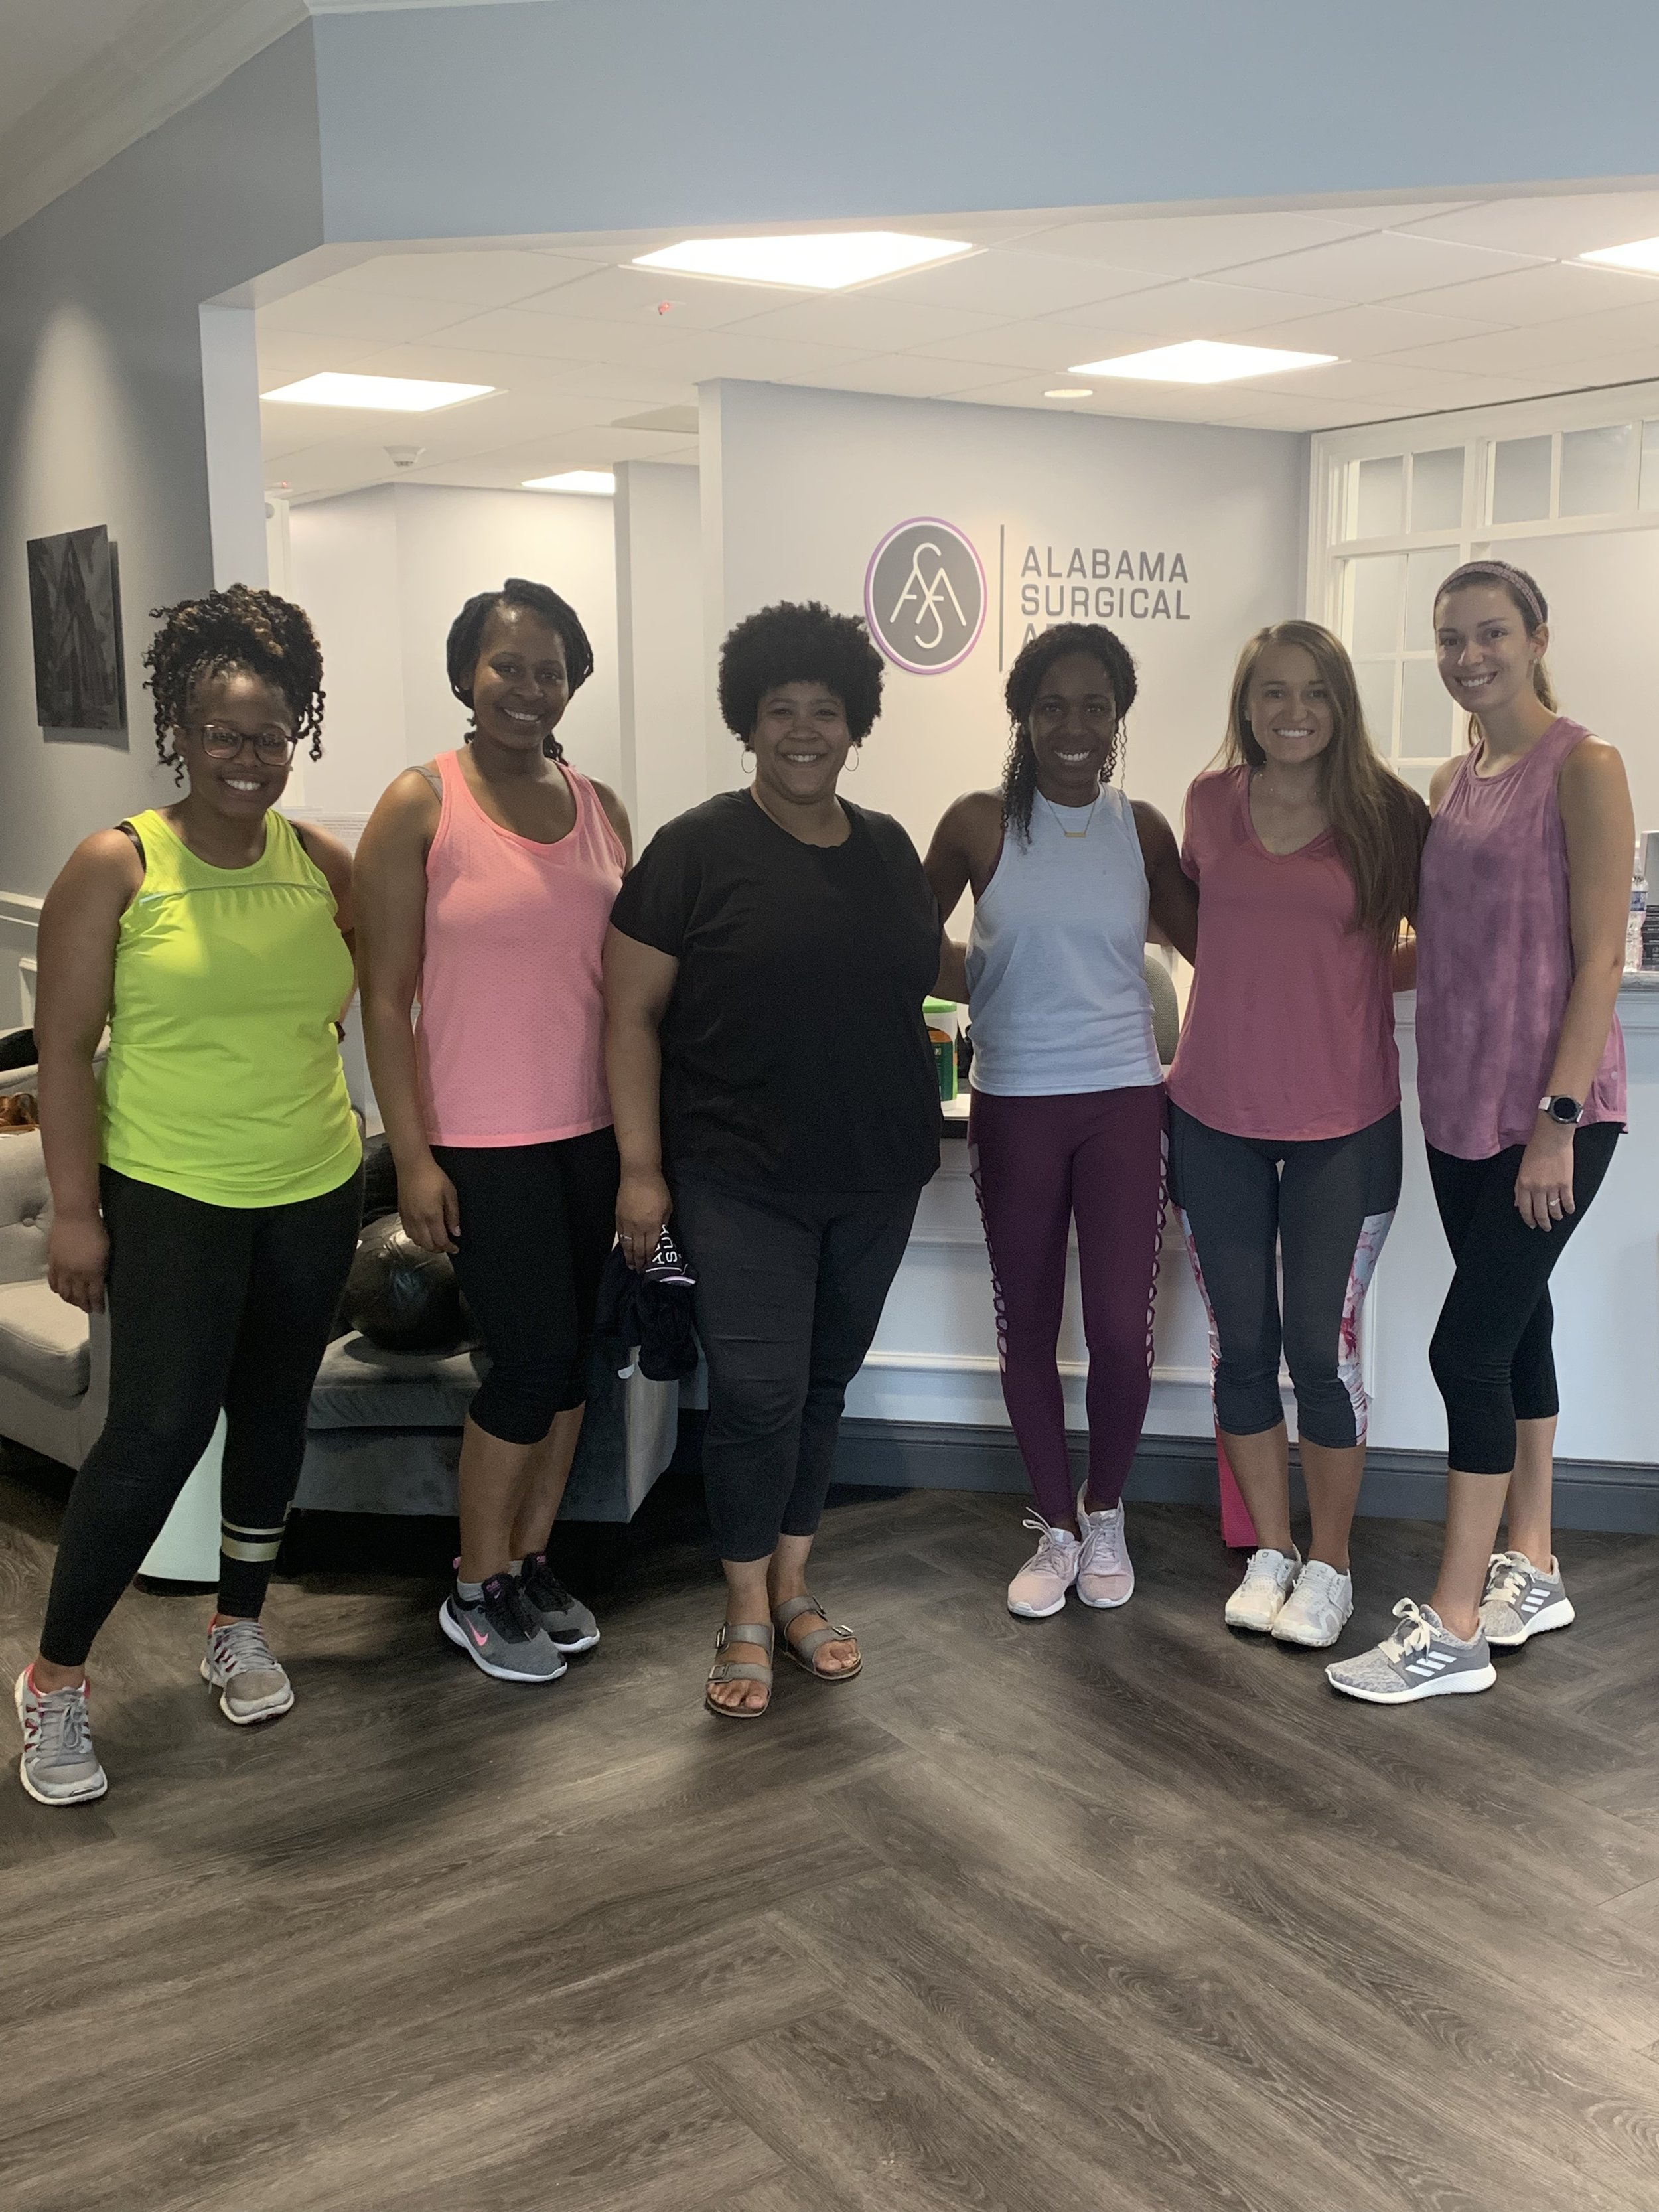 Moms & Mimosas - Grab your spot for an amazing 90 minute workshop that combines physical activity, mimosas, and a group discussion of a different topic every month.If you are local to the Montgomery, Alabama area this event is the perfect way to get an amazing workout and join a community of positive and like minded women who are also on their quest to be the healthiest that they can be.